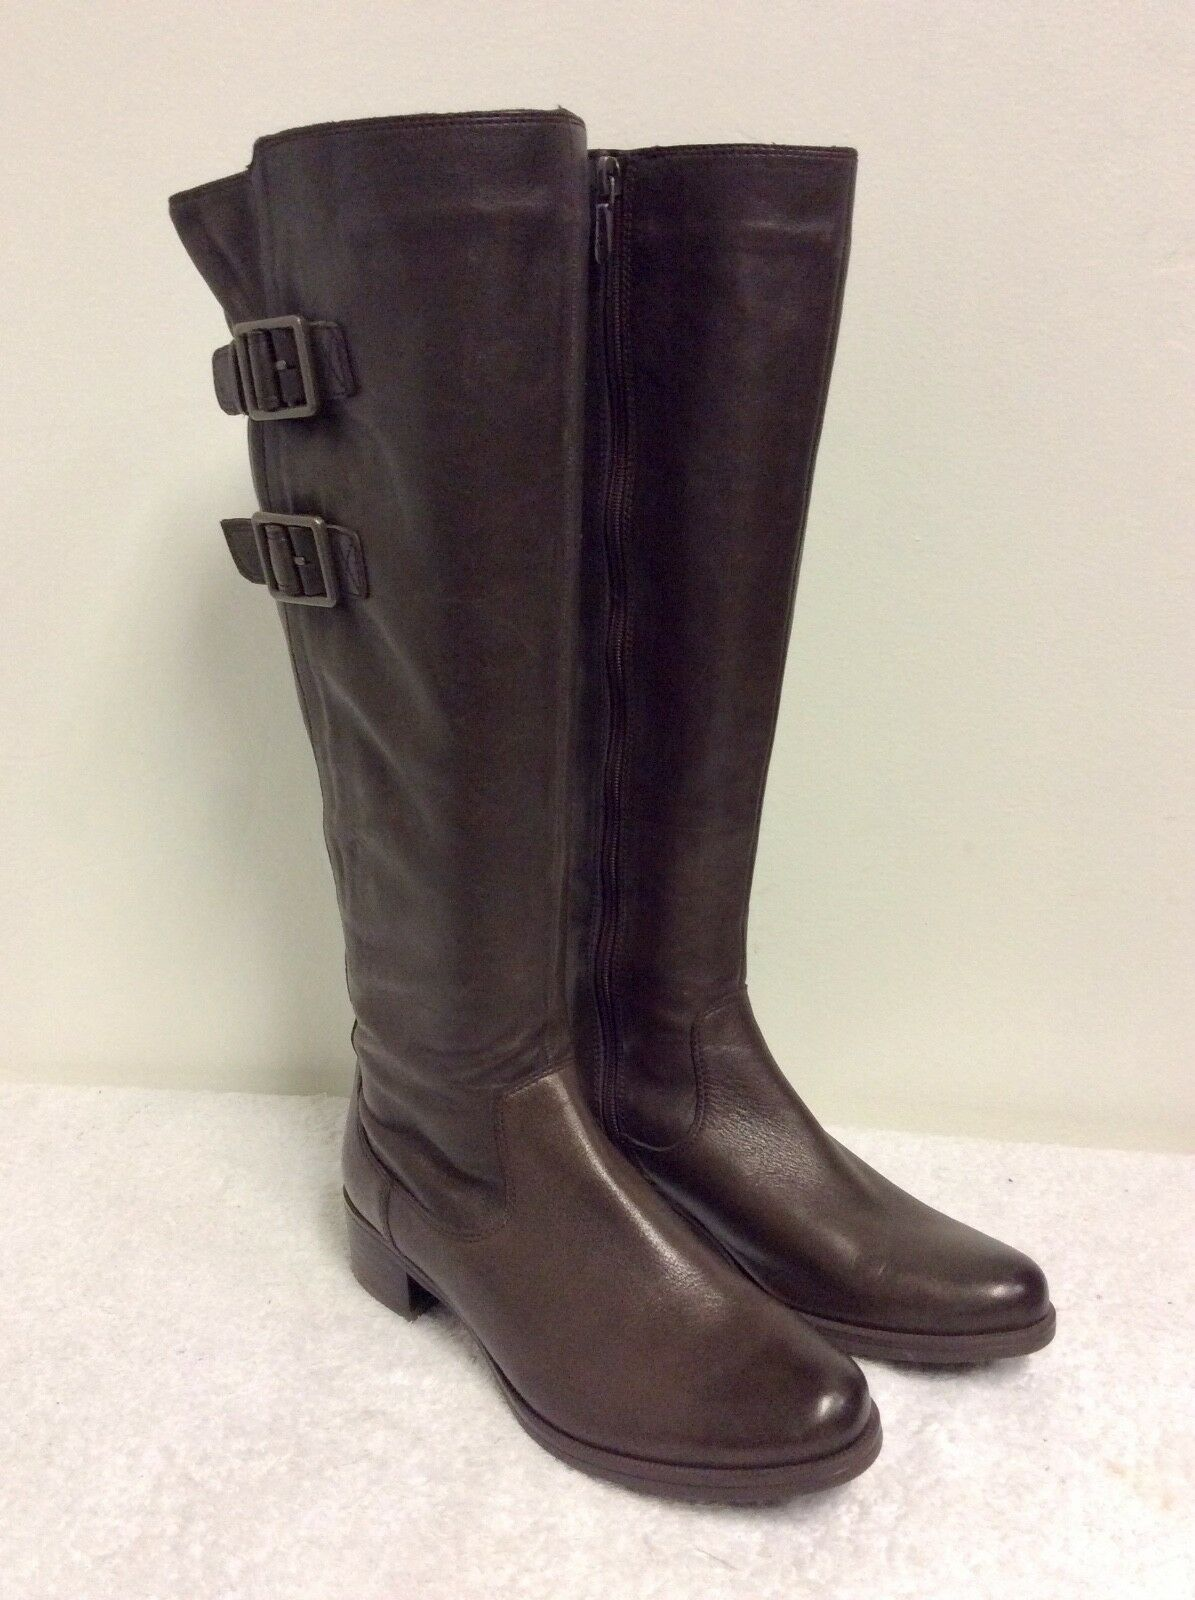 BRAND NEW CLARKS BROWN LEATHER LEATHER BROWN BUCKLE TRIM KNEE LENGTH BOOTS SIZE 3/35.5 7cc78d